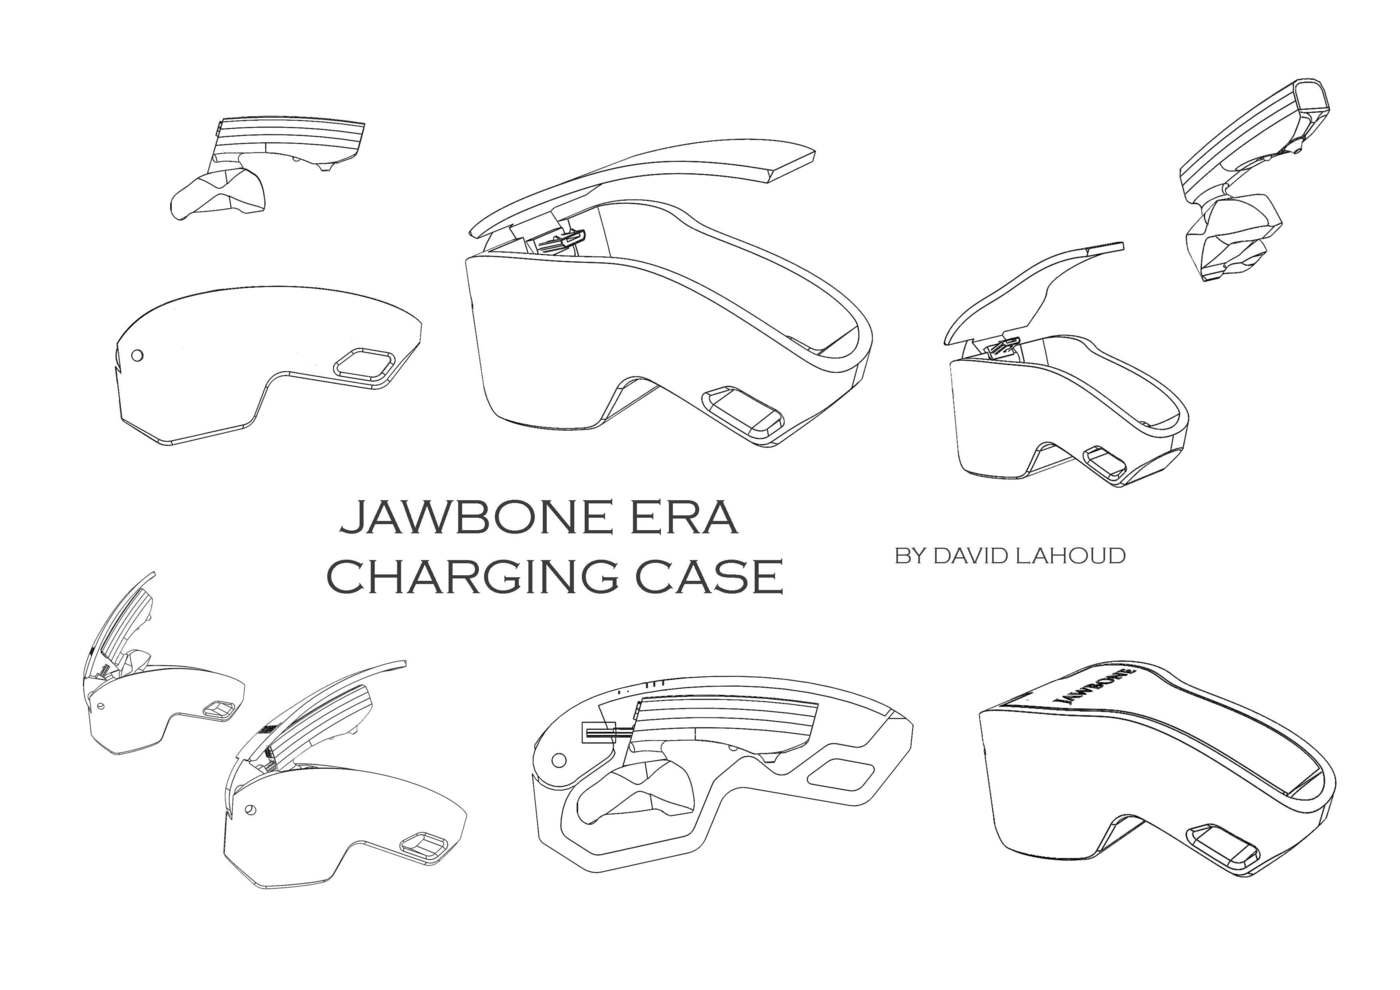 Jawbone Era Charging Cradle by David Lahoud at Coroflot.com